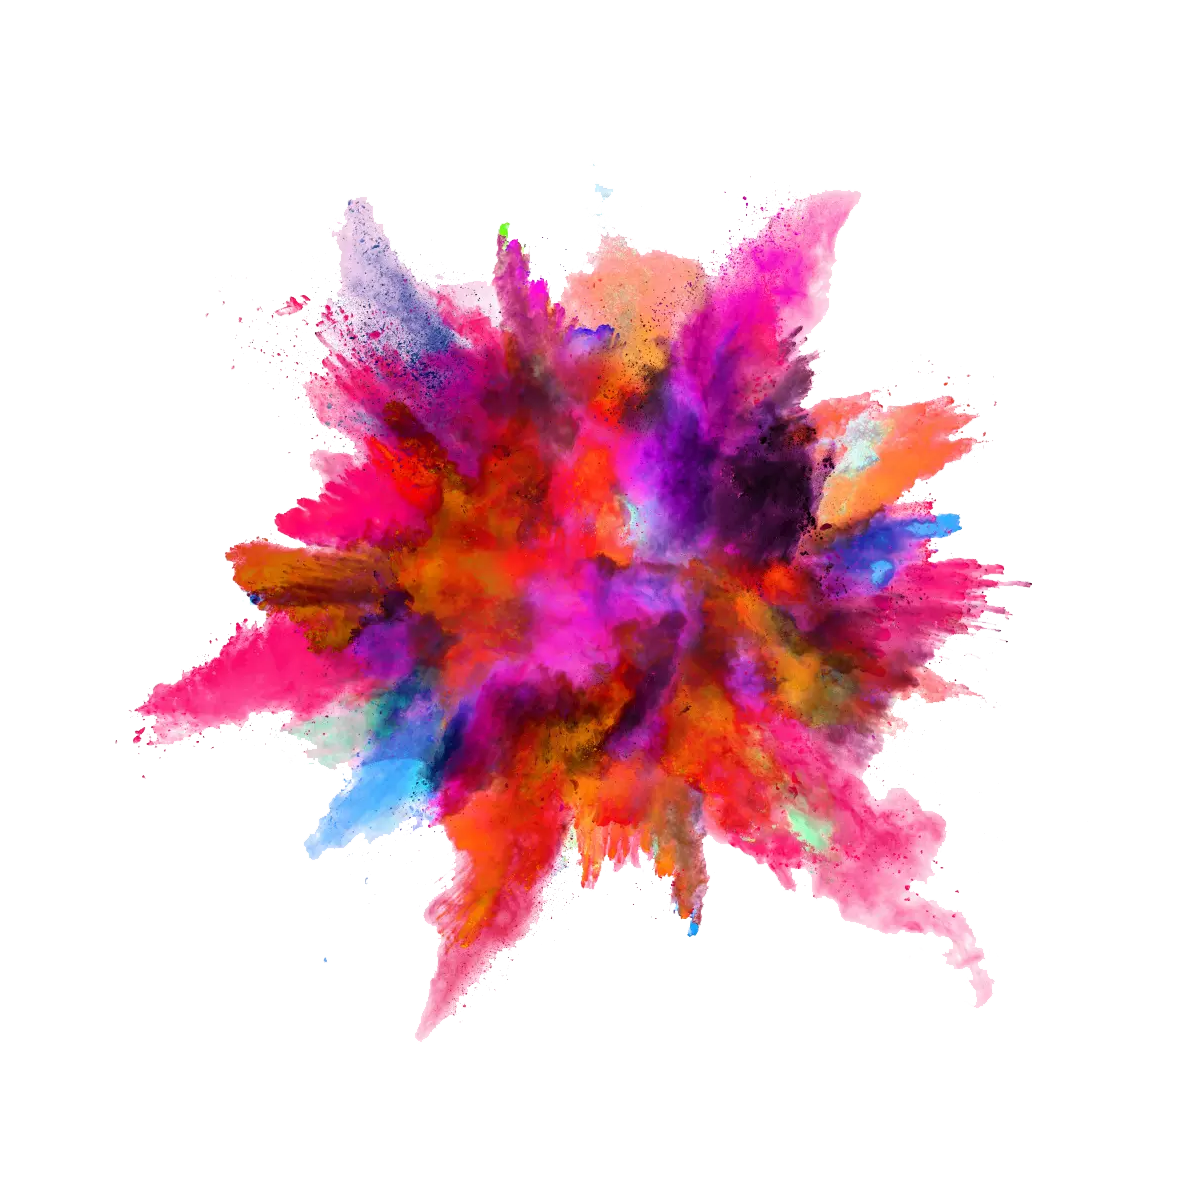 Color powder explosion png. Colors clipart smoke